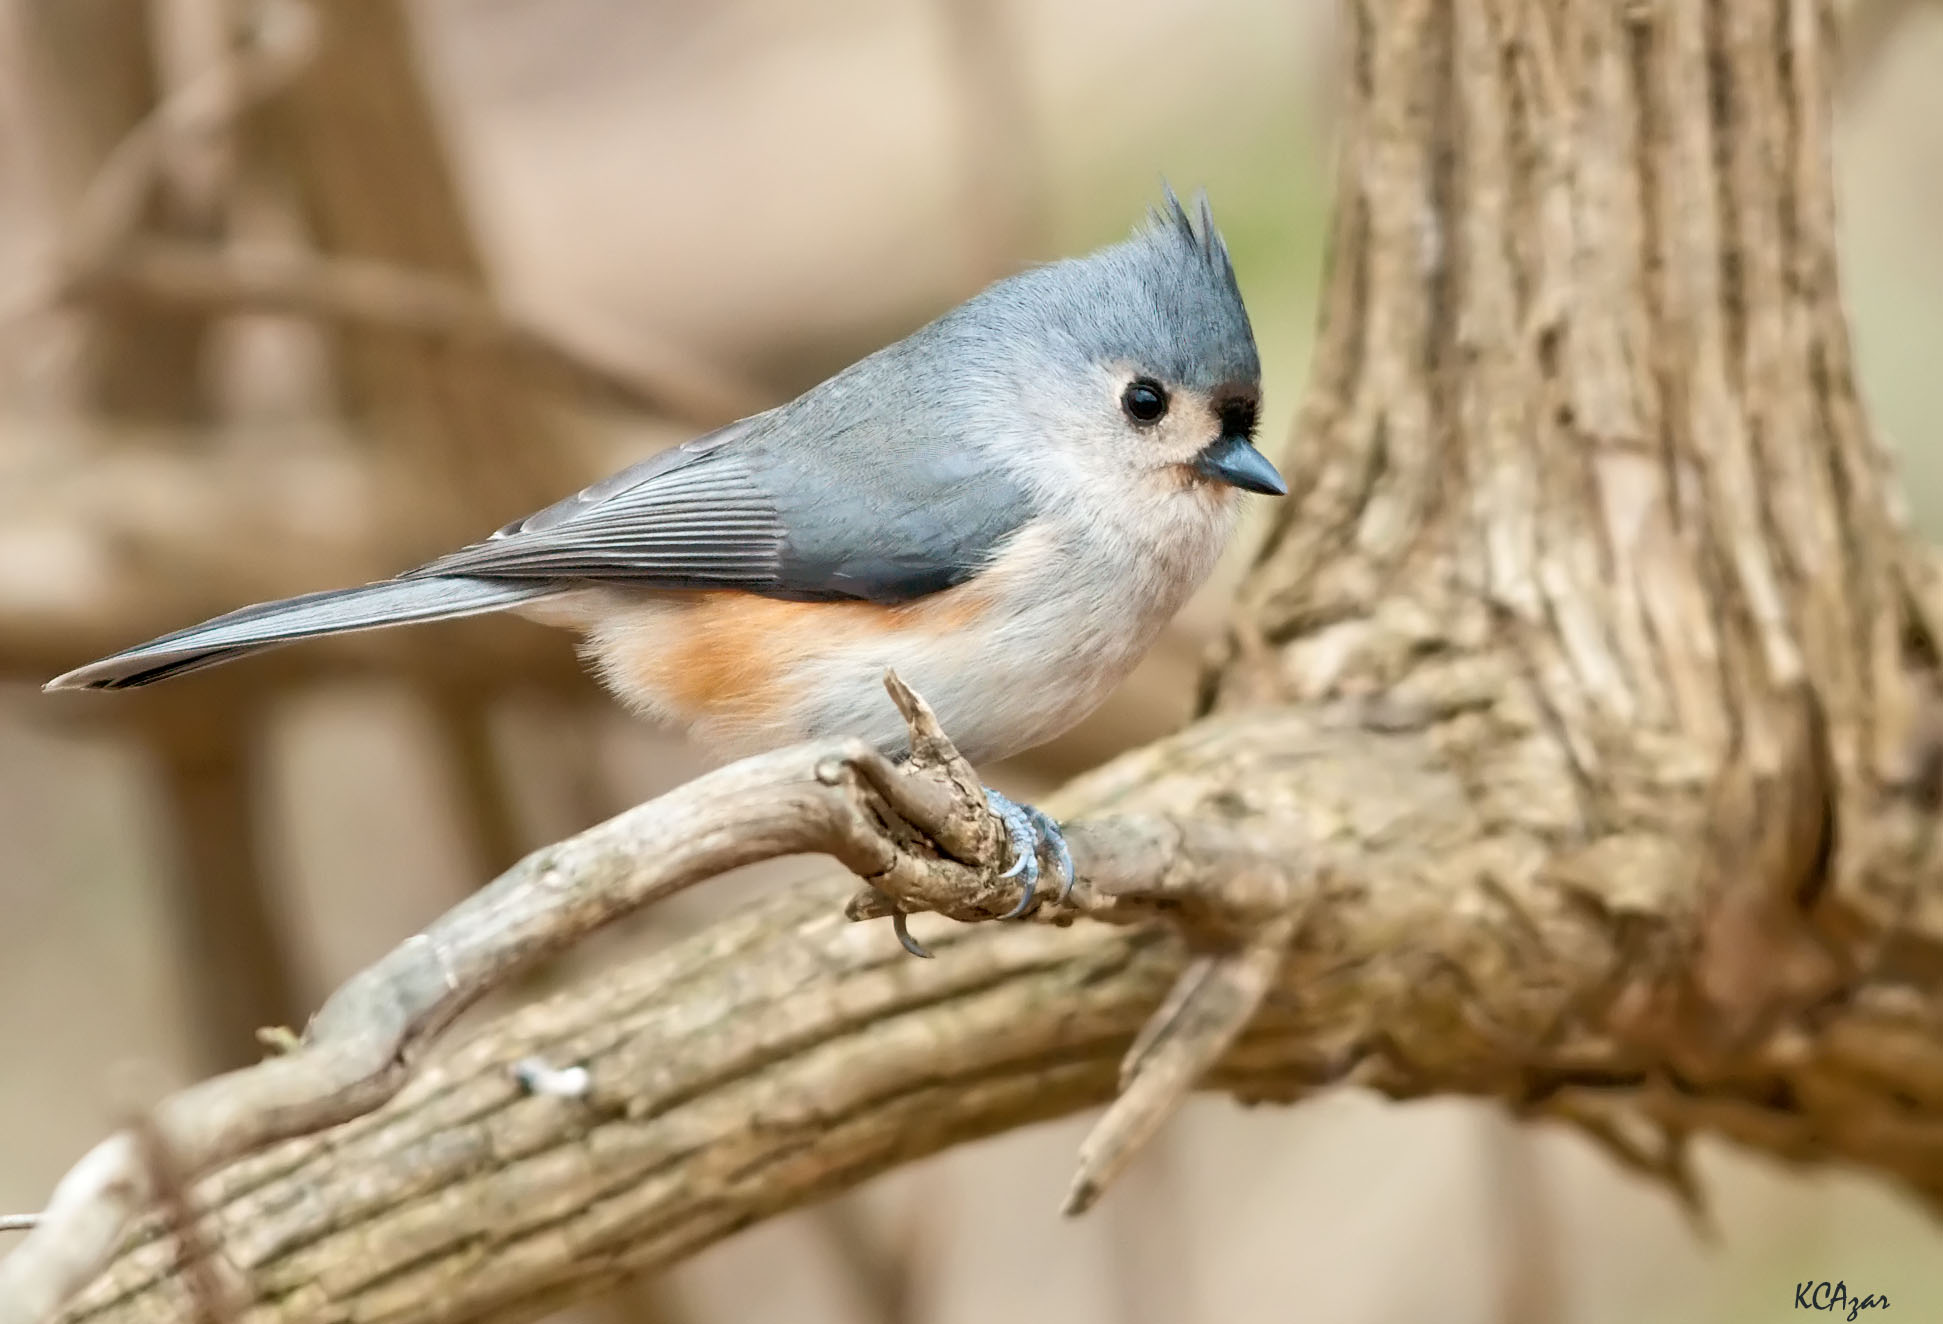 """- Tufted Titmouse (Baeolophus bicolor)Tufted Titmice live in deciduous and mixed forests, but also live in residential areas. They have a wingspan of 7.9-10.2 in. and weigh 0.6-0.9 oz. Their call sounds like """"Peter-peter-peter"""" and they also make sounds that resemble a chickadee. Tufted Titmice eat insects, seeds, and fruit. They are protected on the US Migratory Bird lists.Photo Credits: Kelly Colgan Azar"""